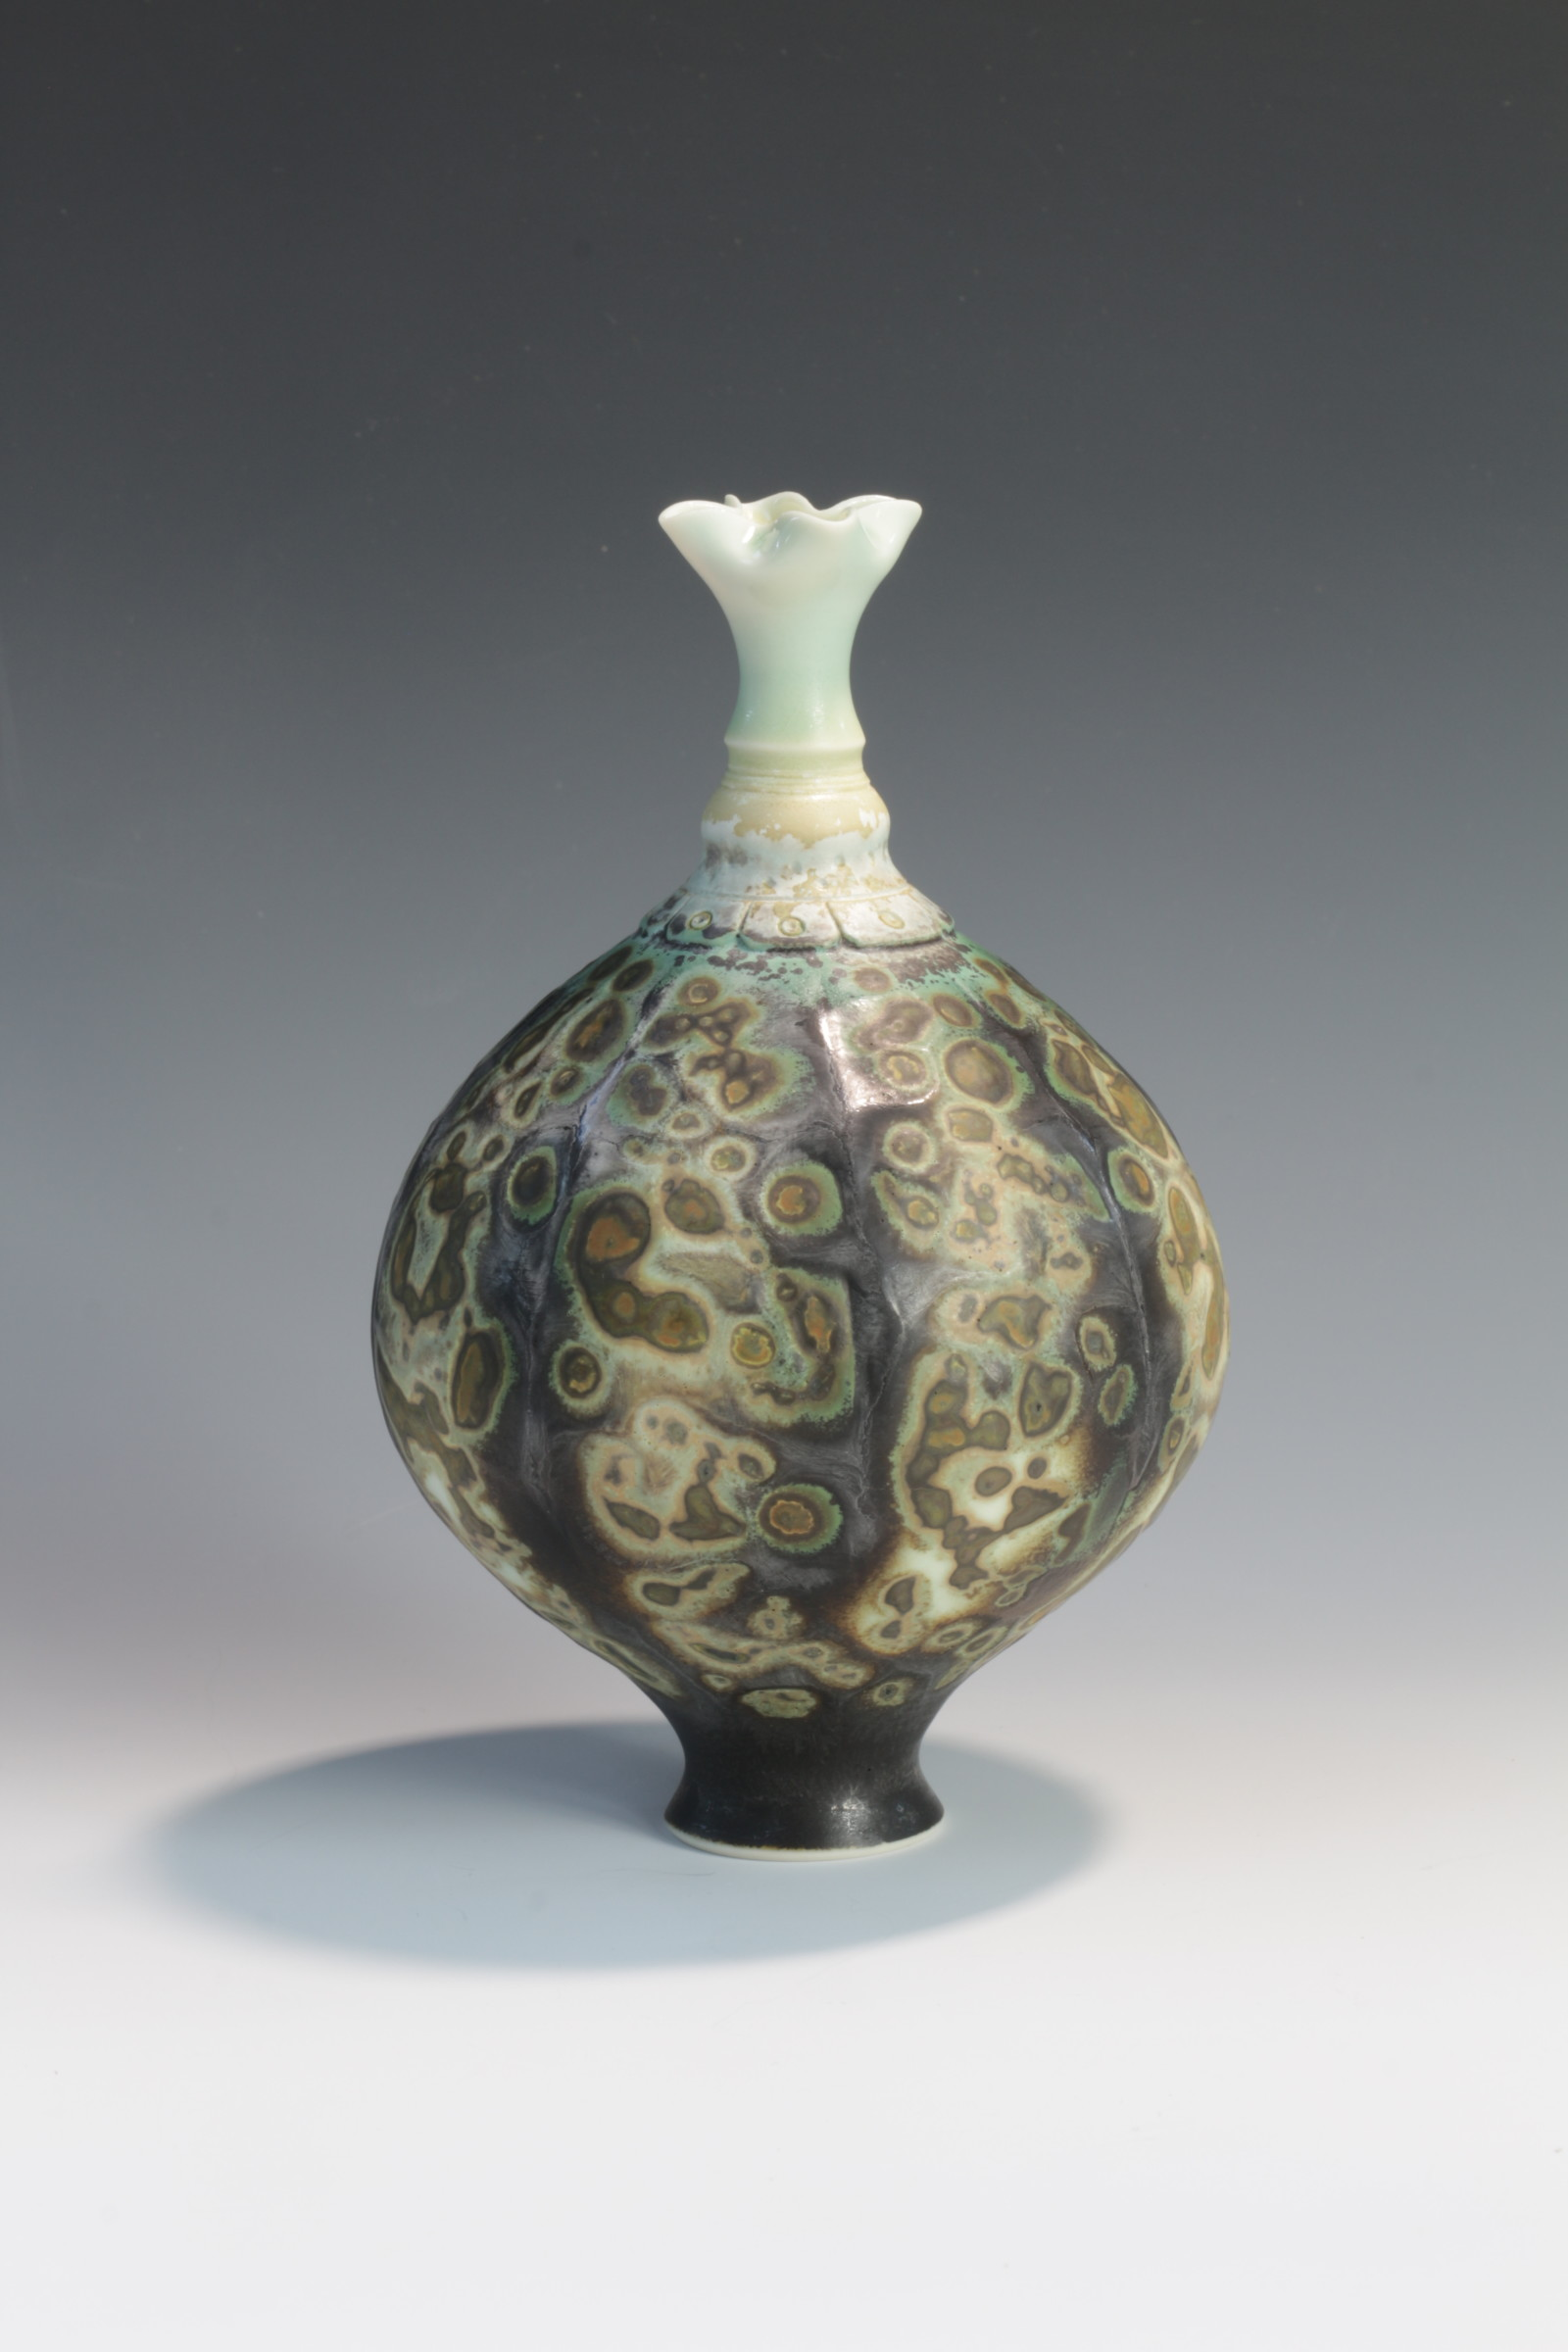 "<span class=""link fancybox-details-link""><a href=""/artists/61-geoffrey-swindell/works/6549-geoffrey-swindell-vessel-2019/"">View Detail Page</a></span><div class=""artist""><strong>Geoffrey Swindell</strong></div> <div class=""title""><em>Vessel</em>, 2019</div> <div class=""signed_and_dated"">Stamped on the bottom</div> <div class=""medium"">Porcelain</div><div class=""copyright_line"">Own Art £24 x 10 months 0% APR</div>"